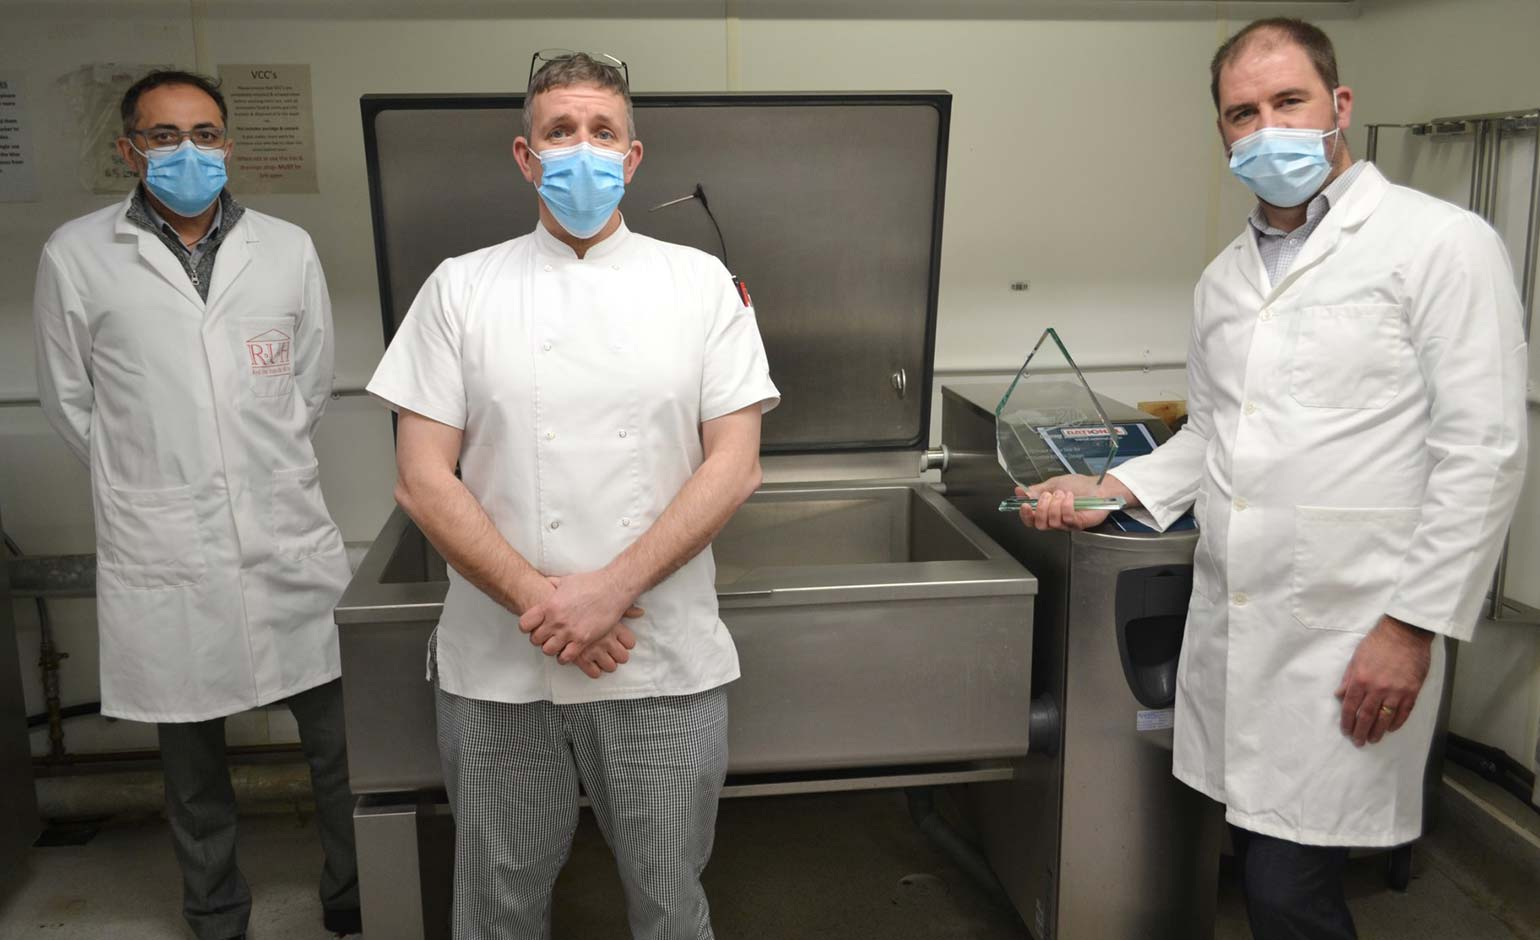 £100,000 kitchen investment sees RUH receive top catering accolade